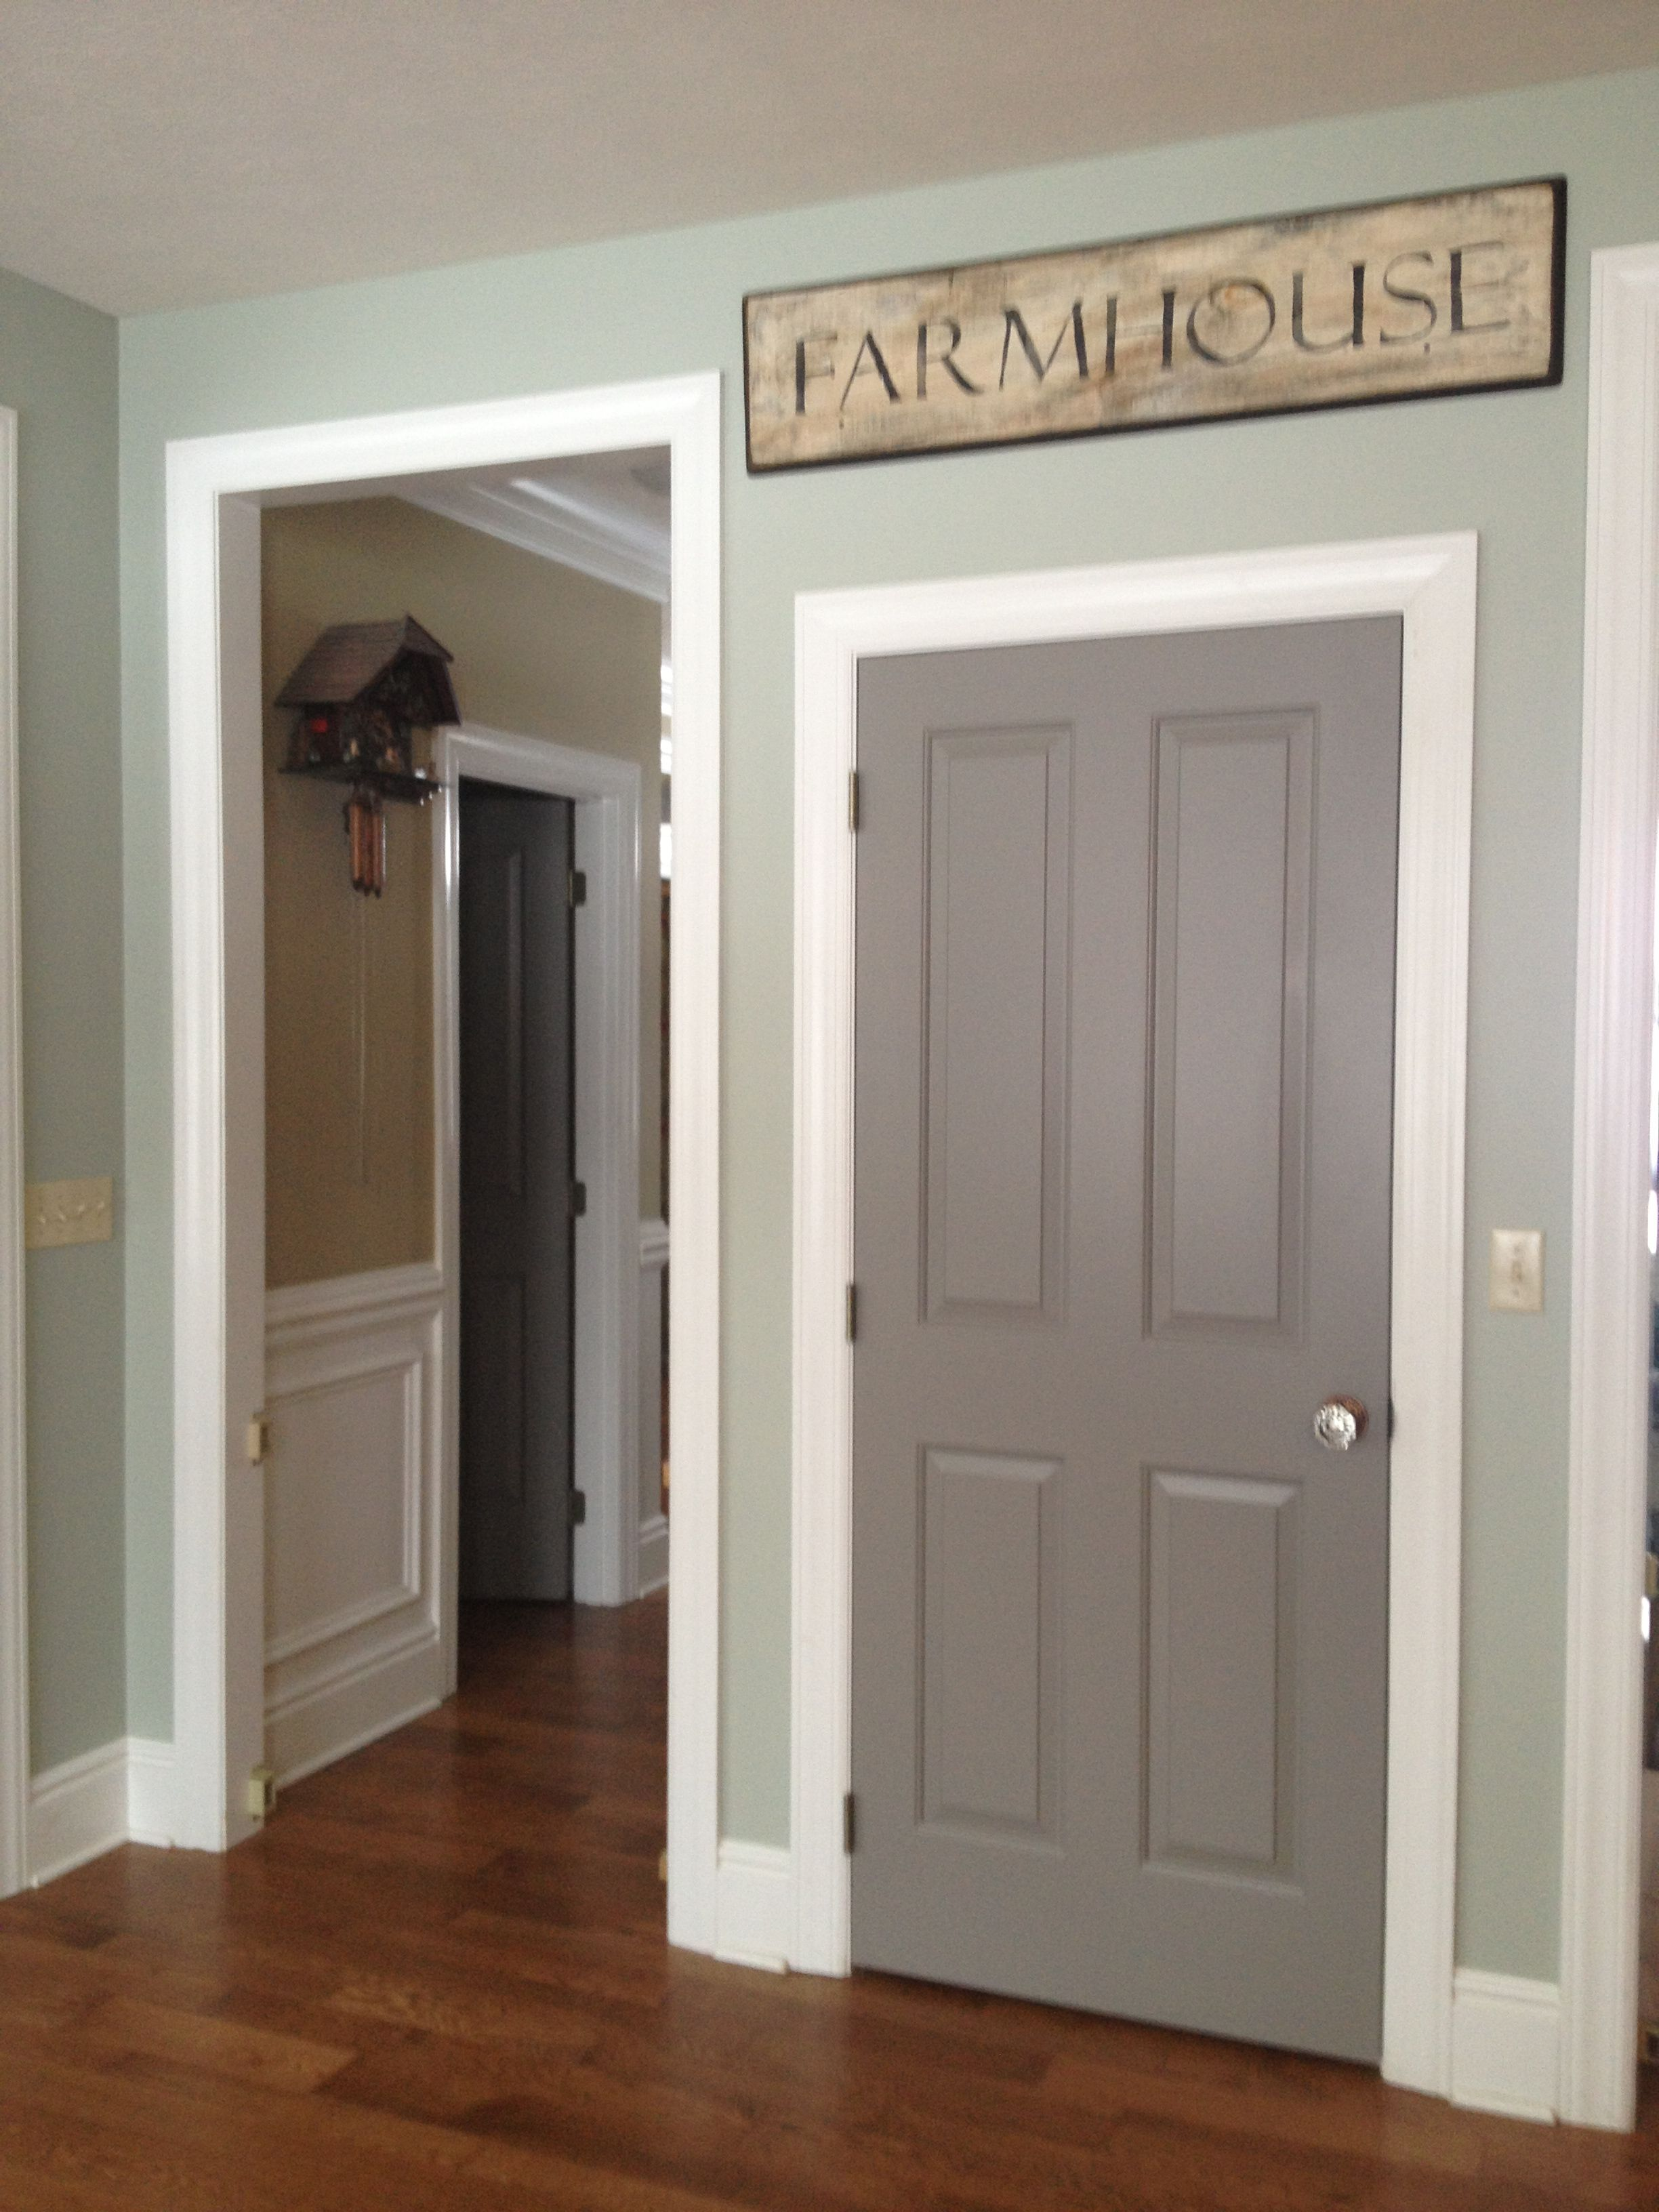 sherwin williams dovetail grey the door color is what i